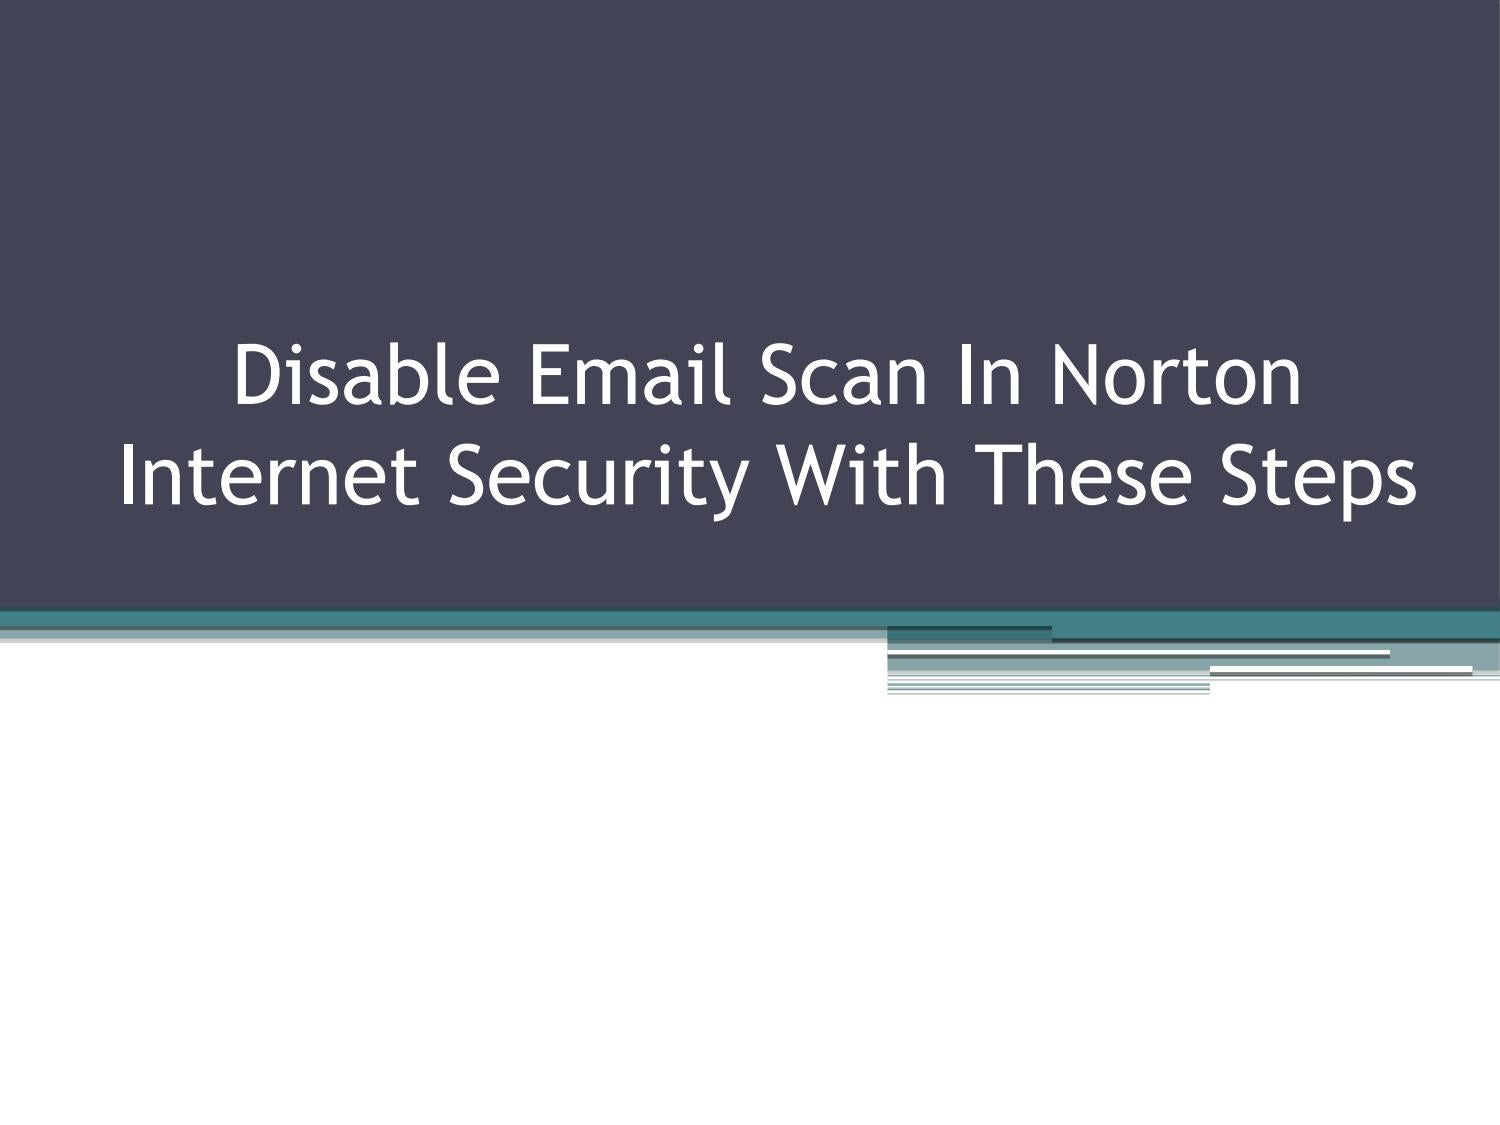 Norton™ provides award-winning antivirus and security software for your PC, Mac, and mobile devices. Get Norton™ software and enjoy a peace of mind when you surf online.